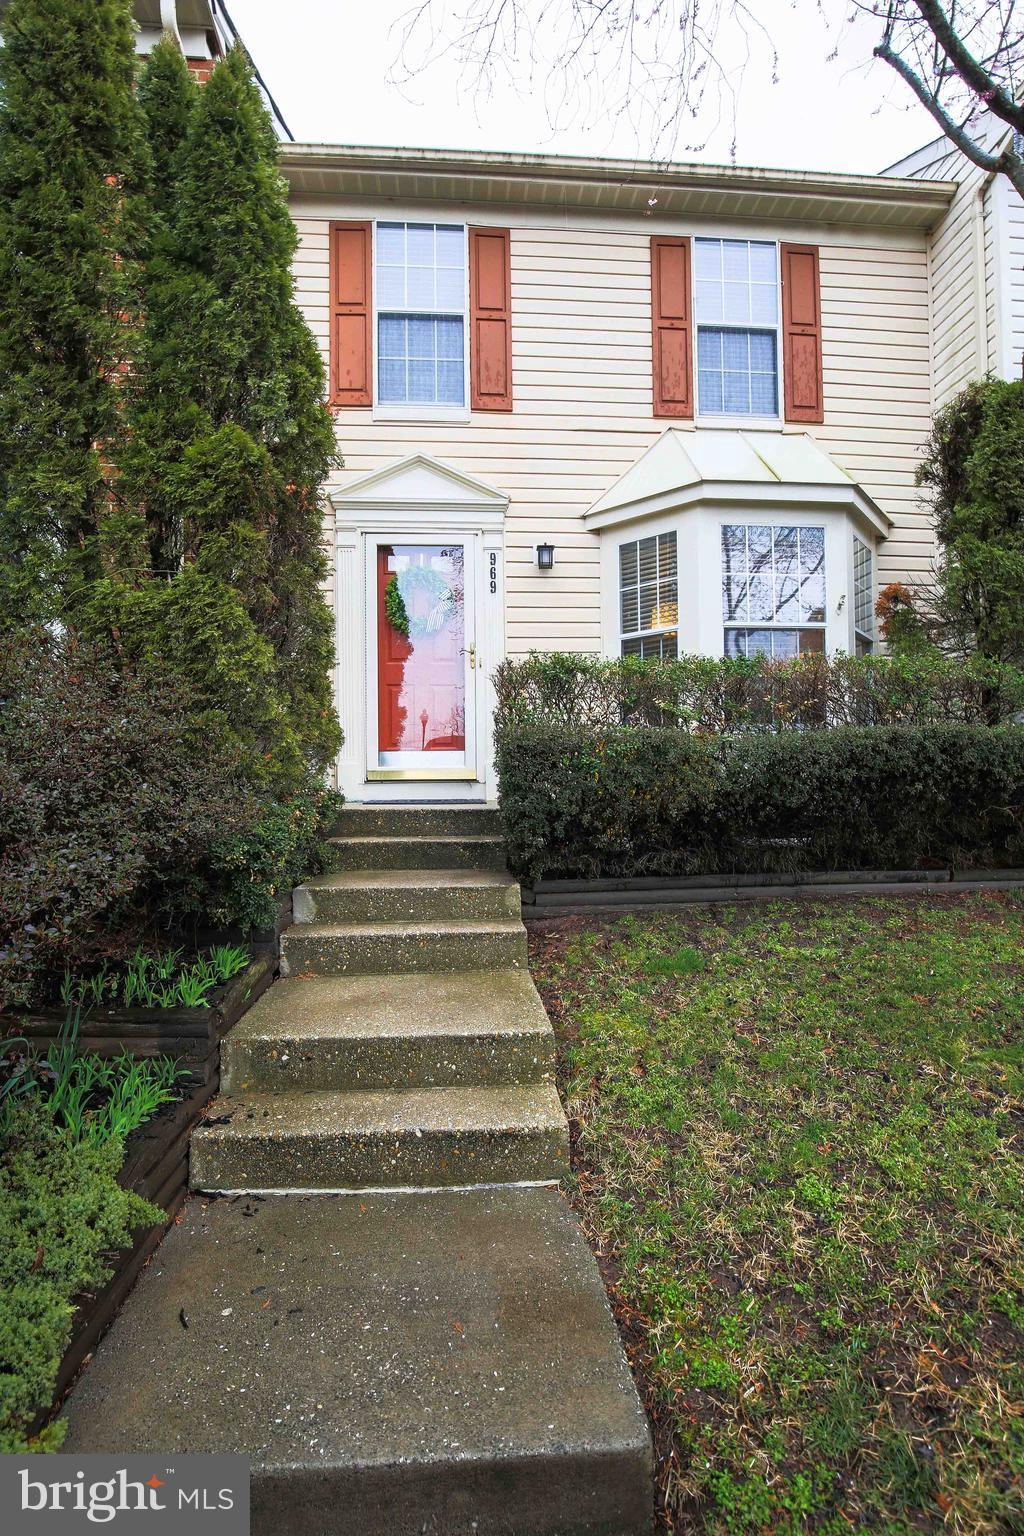 969 CHESTNUT MANOR COURT, CHESTNUT HILL COVE, MD 21226